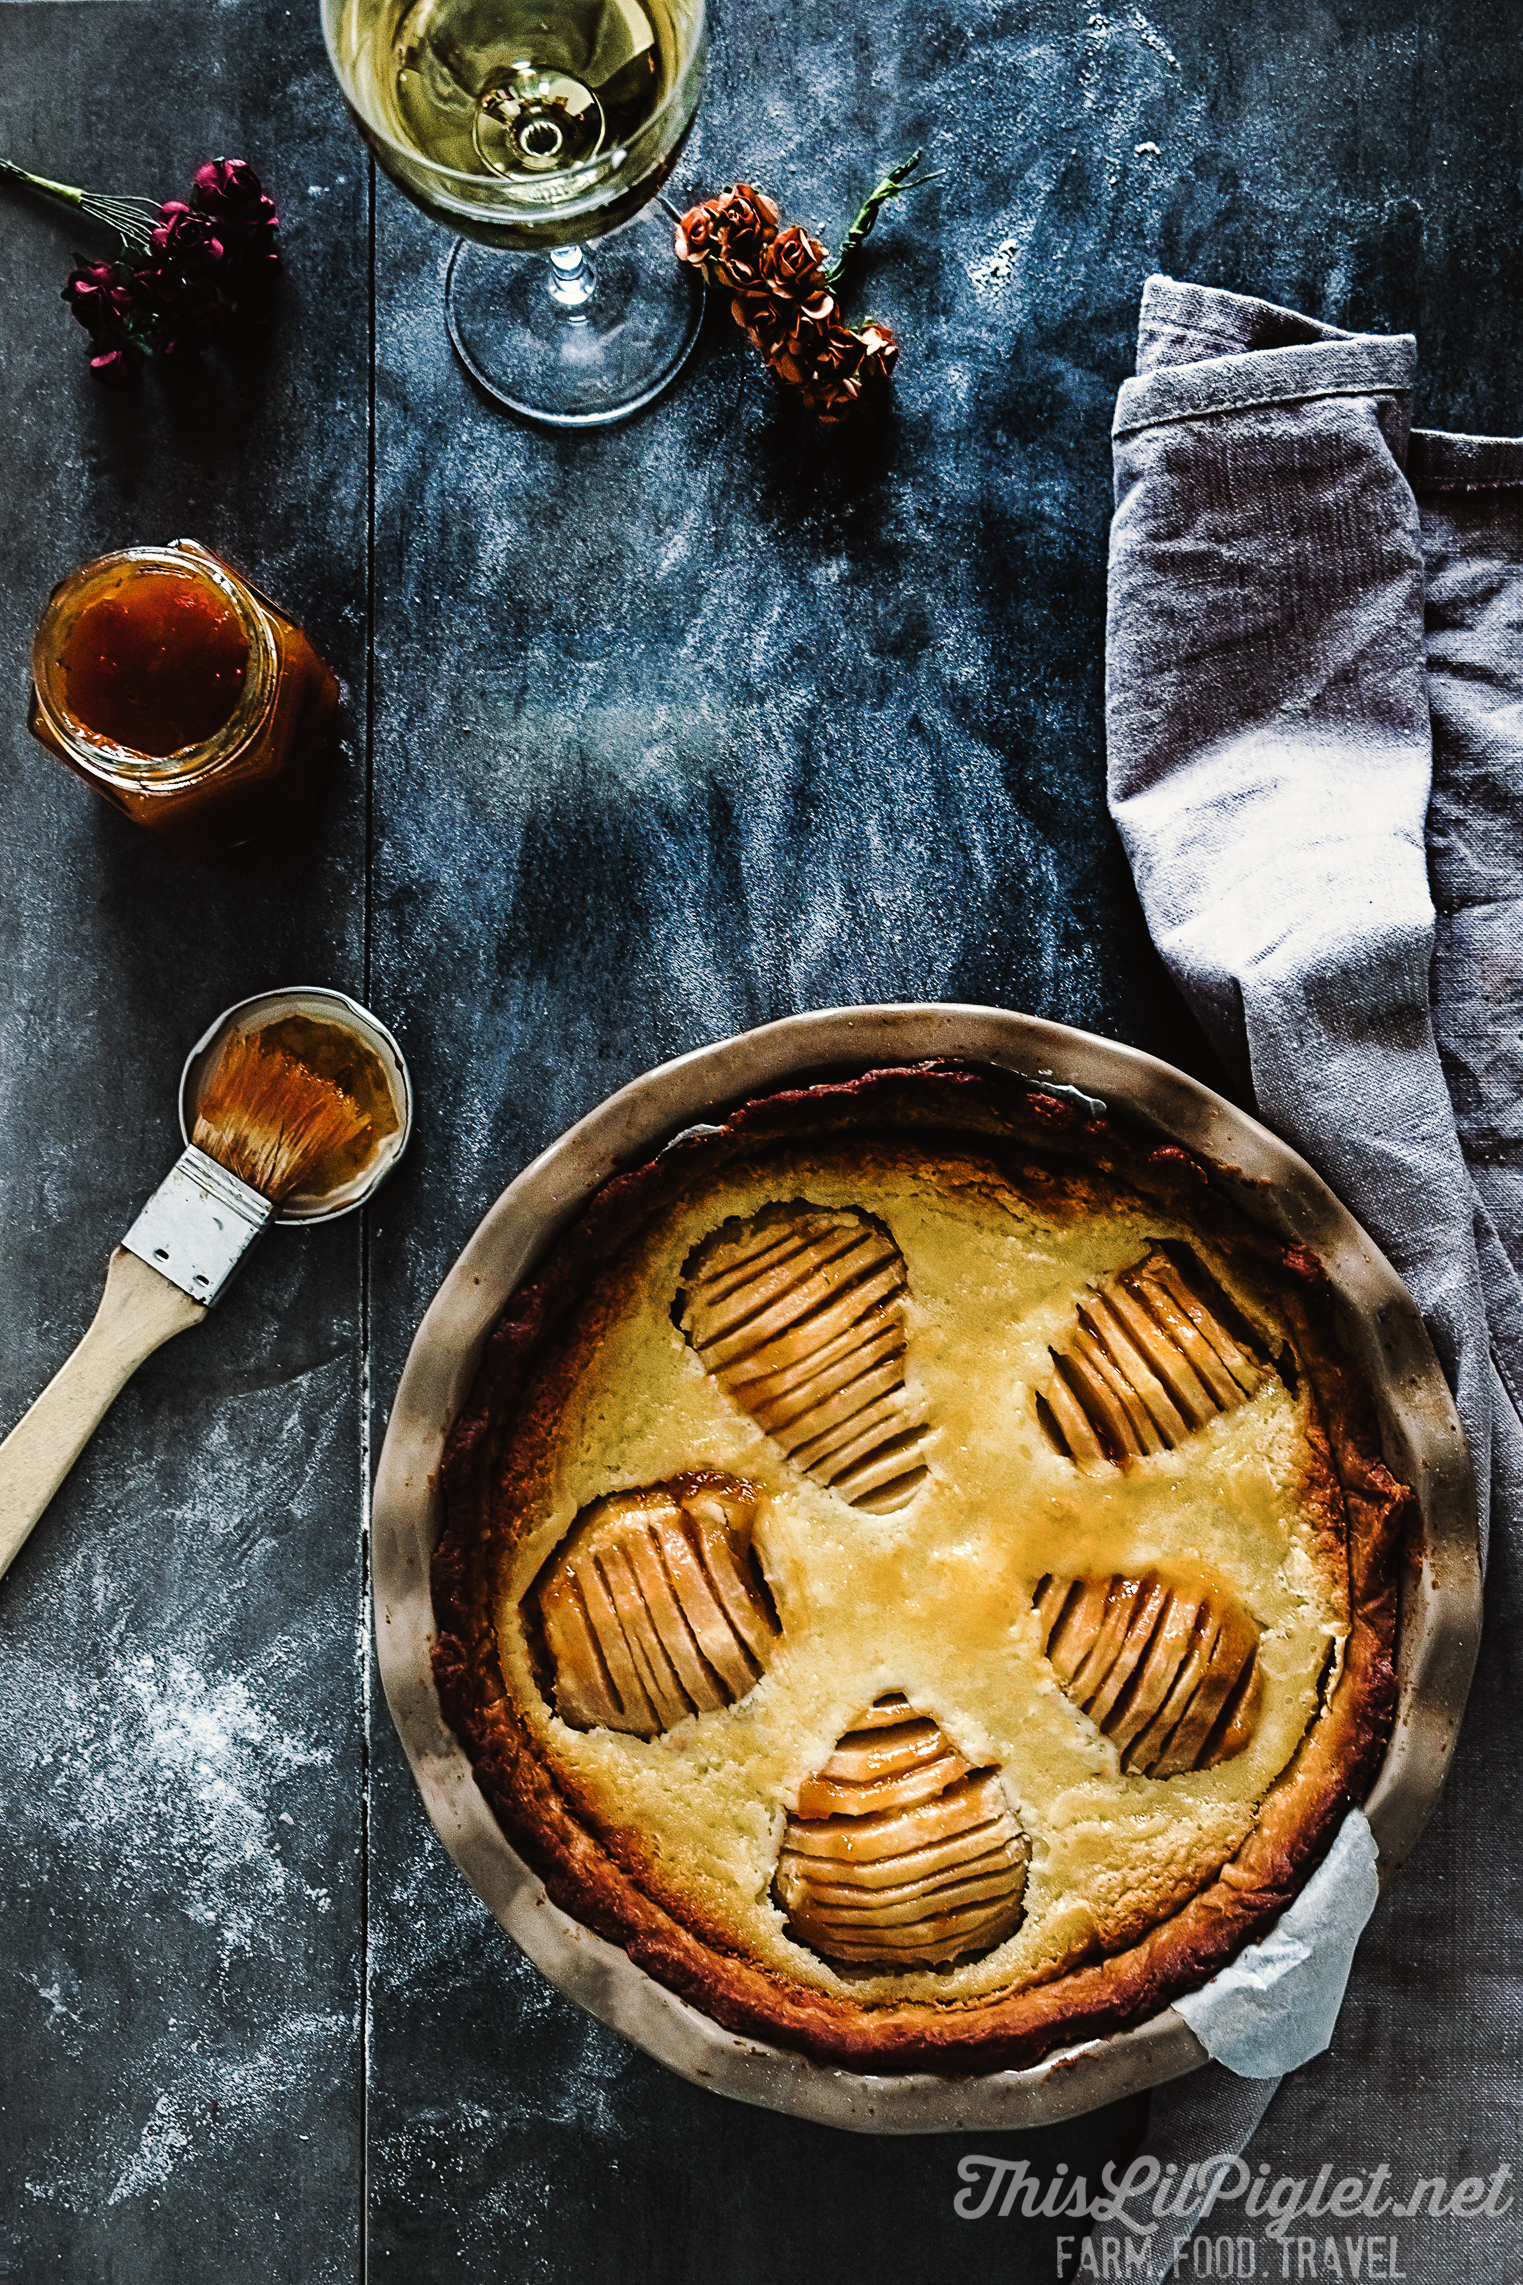 Wine Glazed Pear Tart with Frangipane Filling // thislilpiglet.net